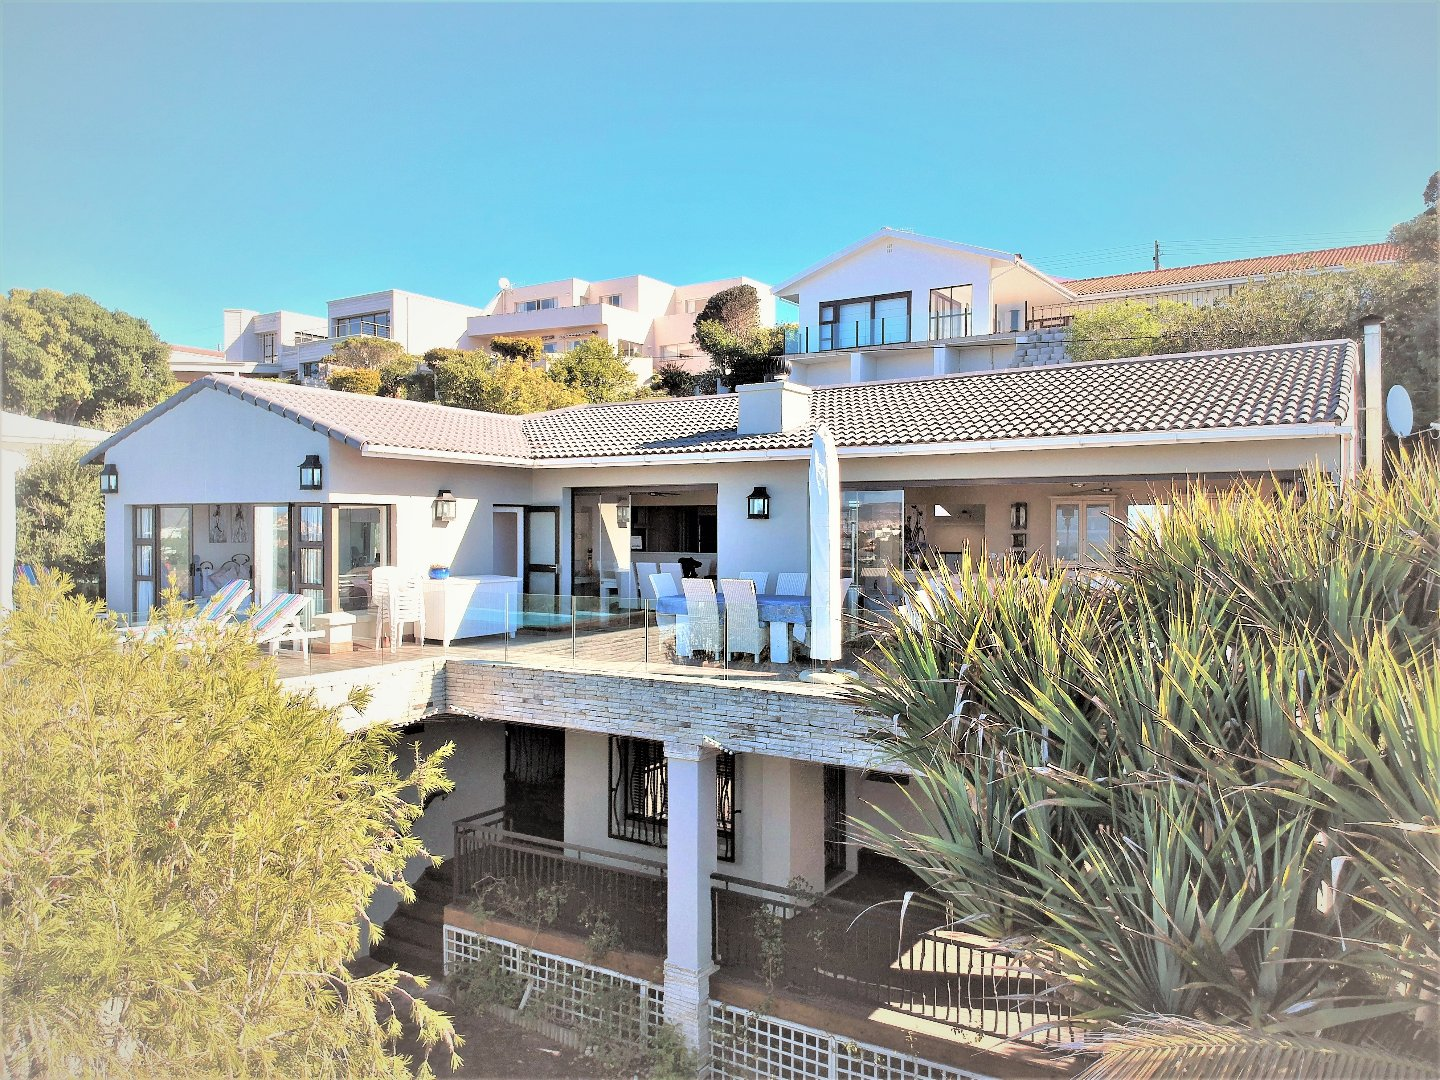 Plettenberg Bay, Lower Robberg Property  | Houses For Sale Lower Robberg (Garden Route), Lower Robberg, House 5 bedrooms property for sale Price:4,850,000